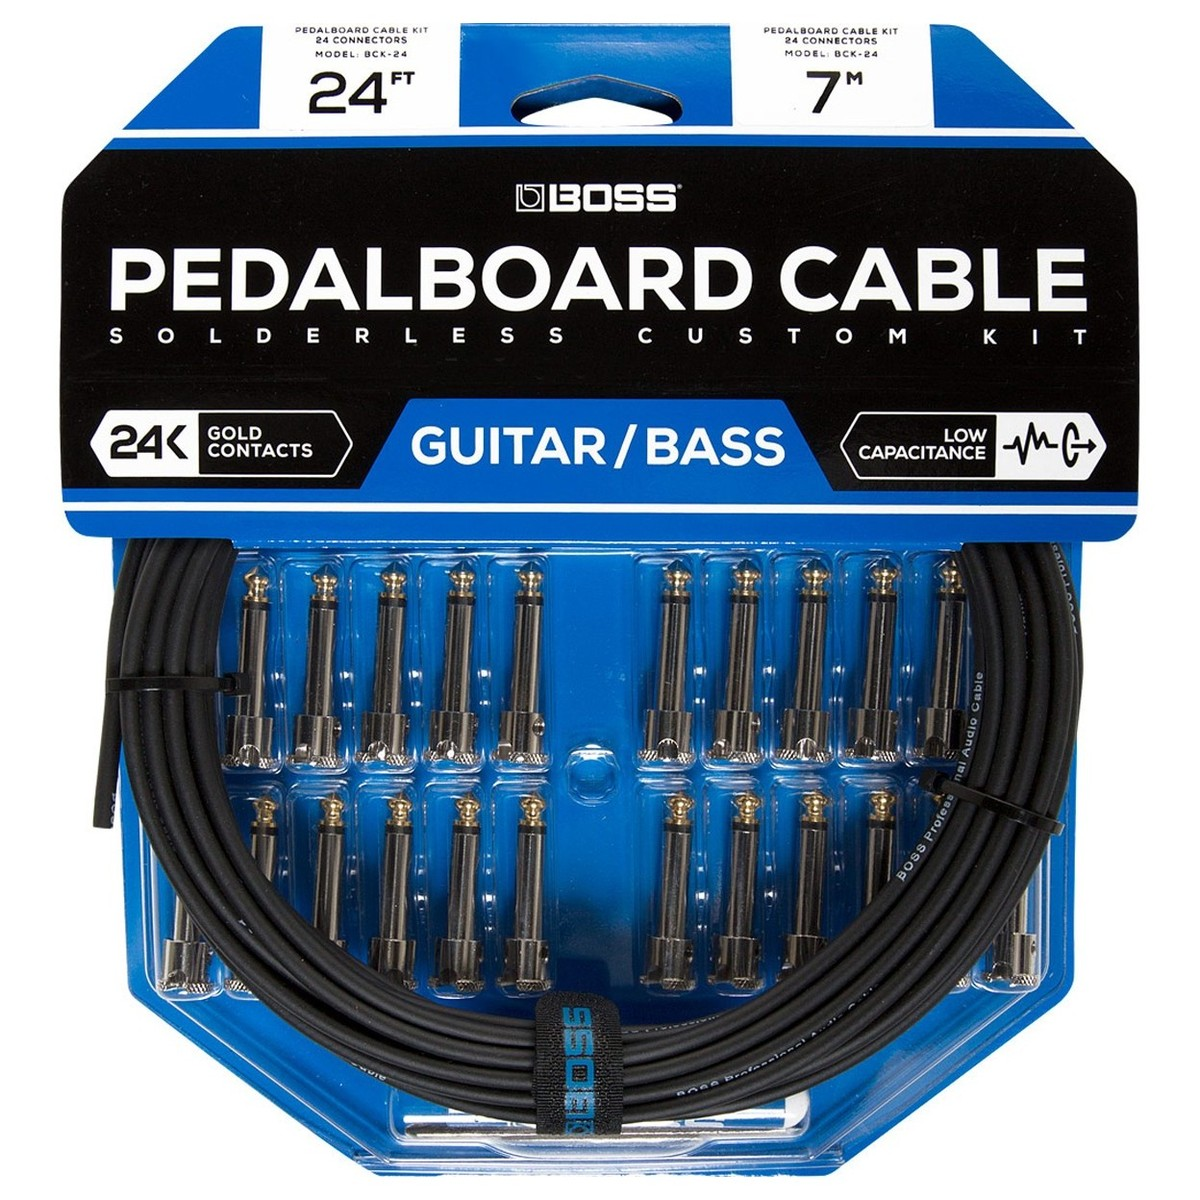 boss bck 24 solderless pedalboard cable kit at gear4music. Black Bedroom Furniture Sets. Home Design Ideas